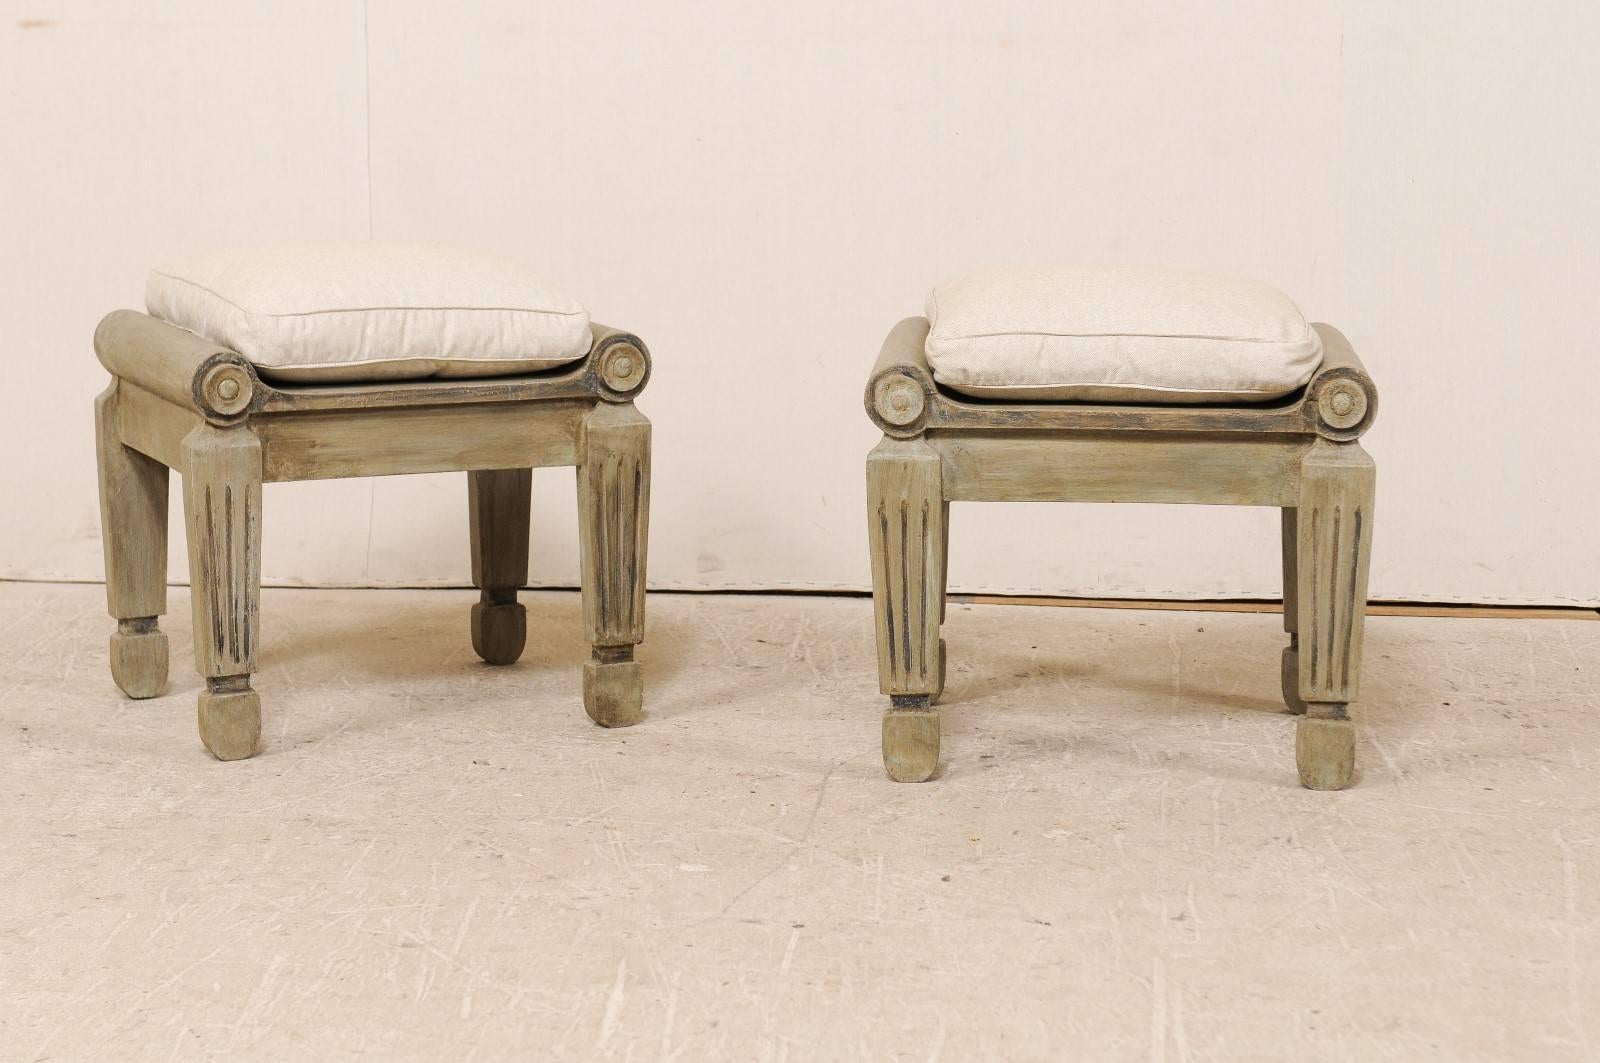 Pair of Carved and Painted Brazilian Wood Stools with Fluted and Tapered Legs 3 & Pair of Carved and Painted Brazilian Wood Stools with Fluted and ... islam-shia.org